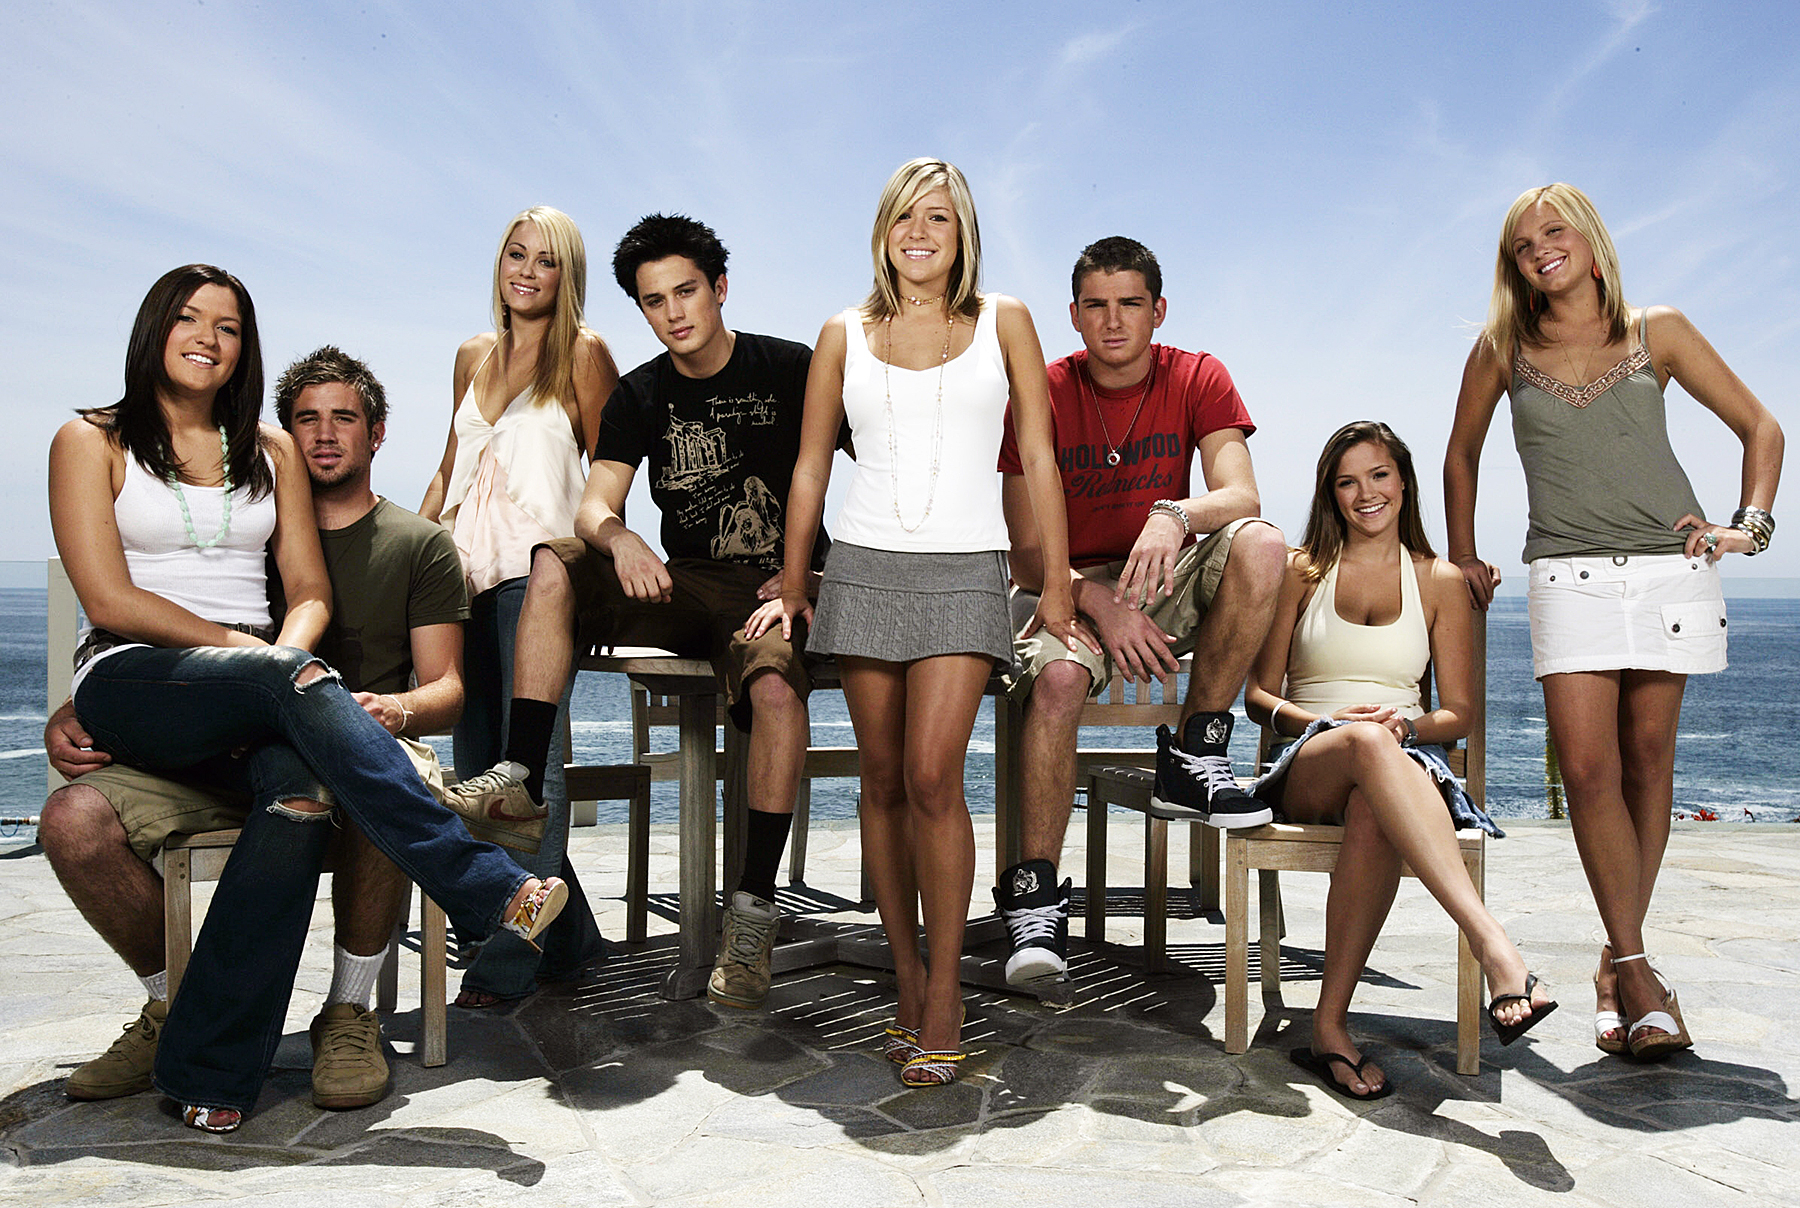 The cast of Laguna Beach